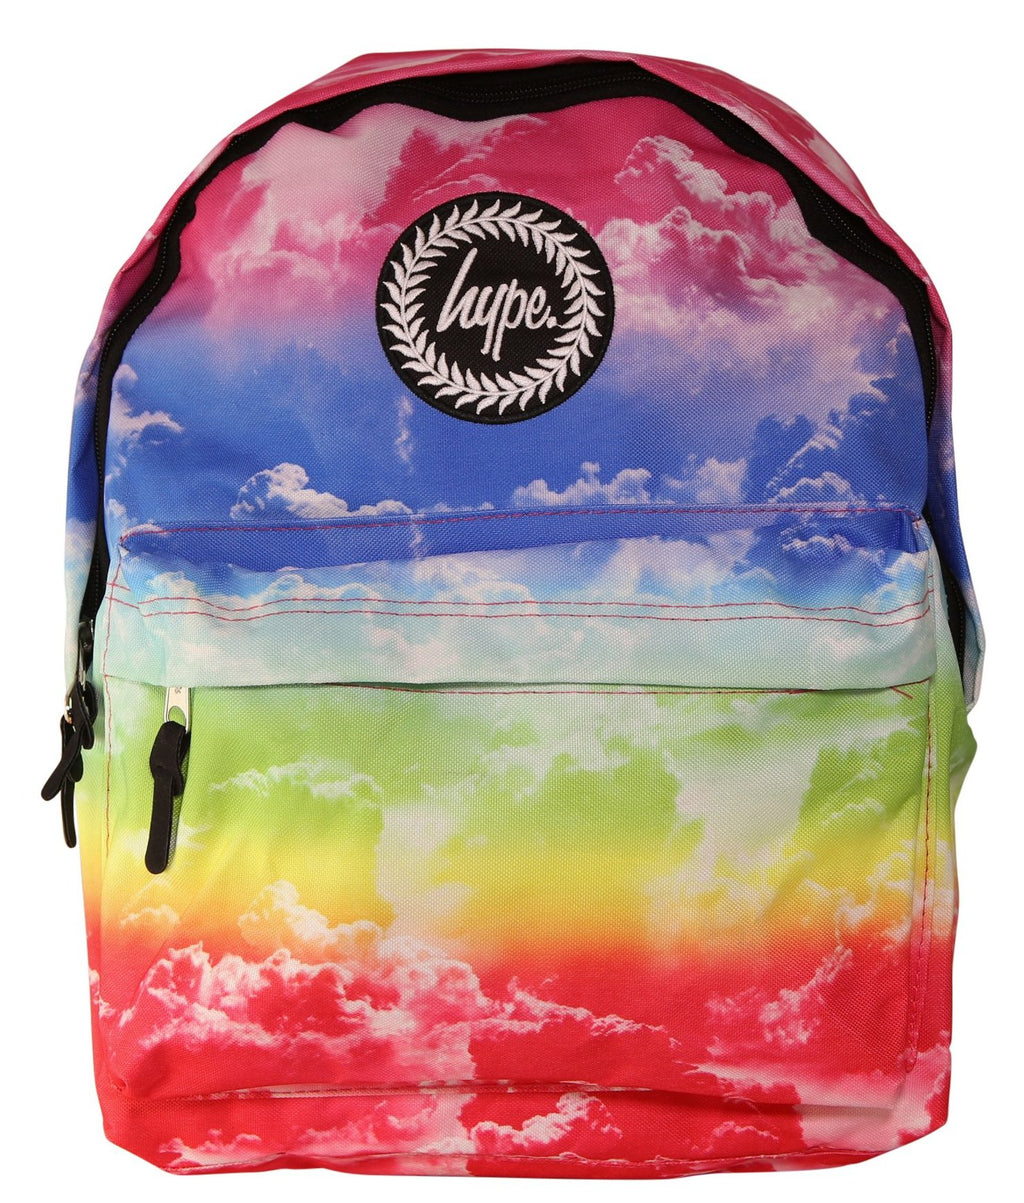 HYPE RAINBOW CLOUDS BACKPACK RUCKSACK BAG - MULTI